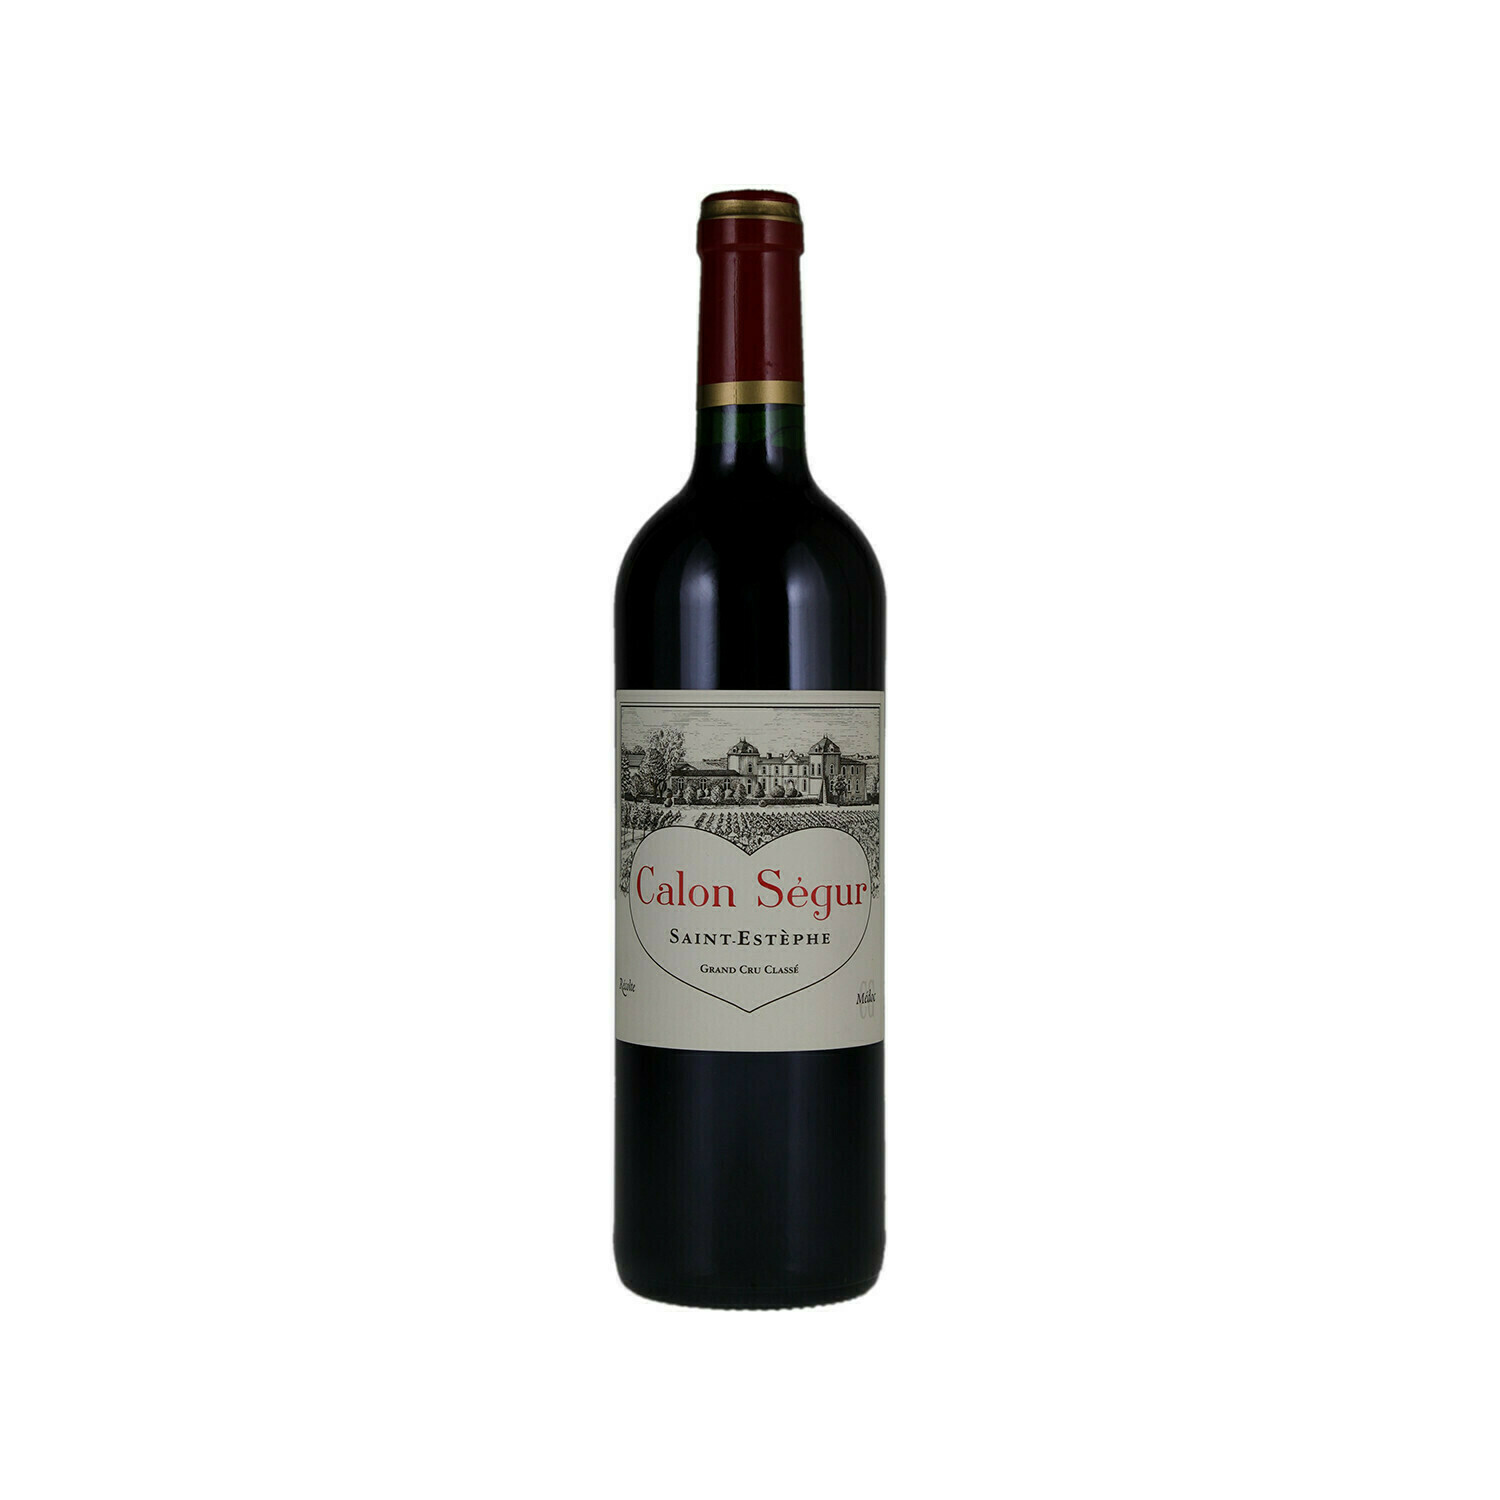 2005 Chateau Calon-Segur Saint-Estephe France 1.5L